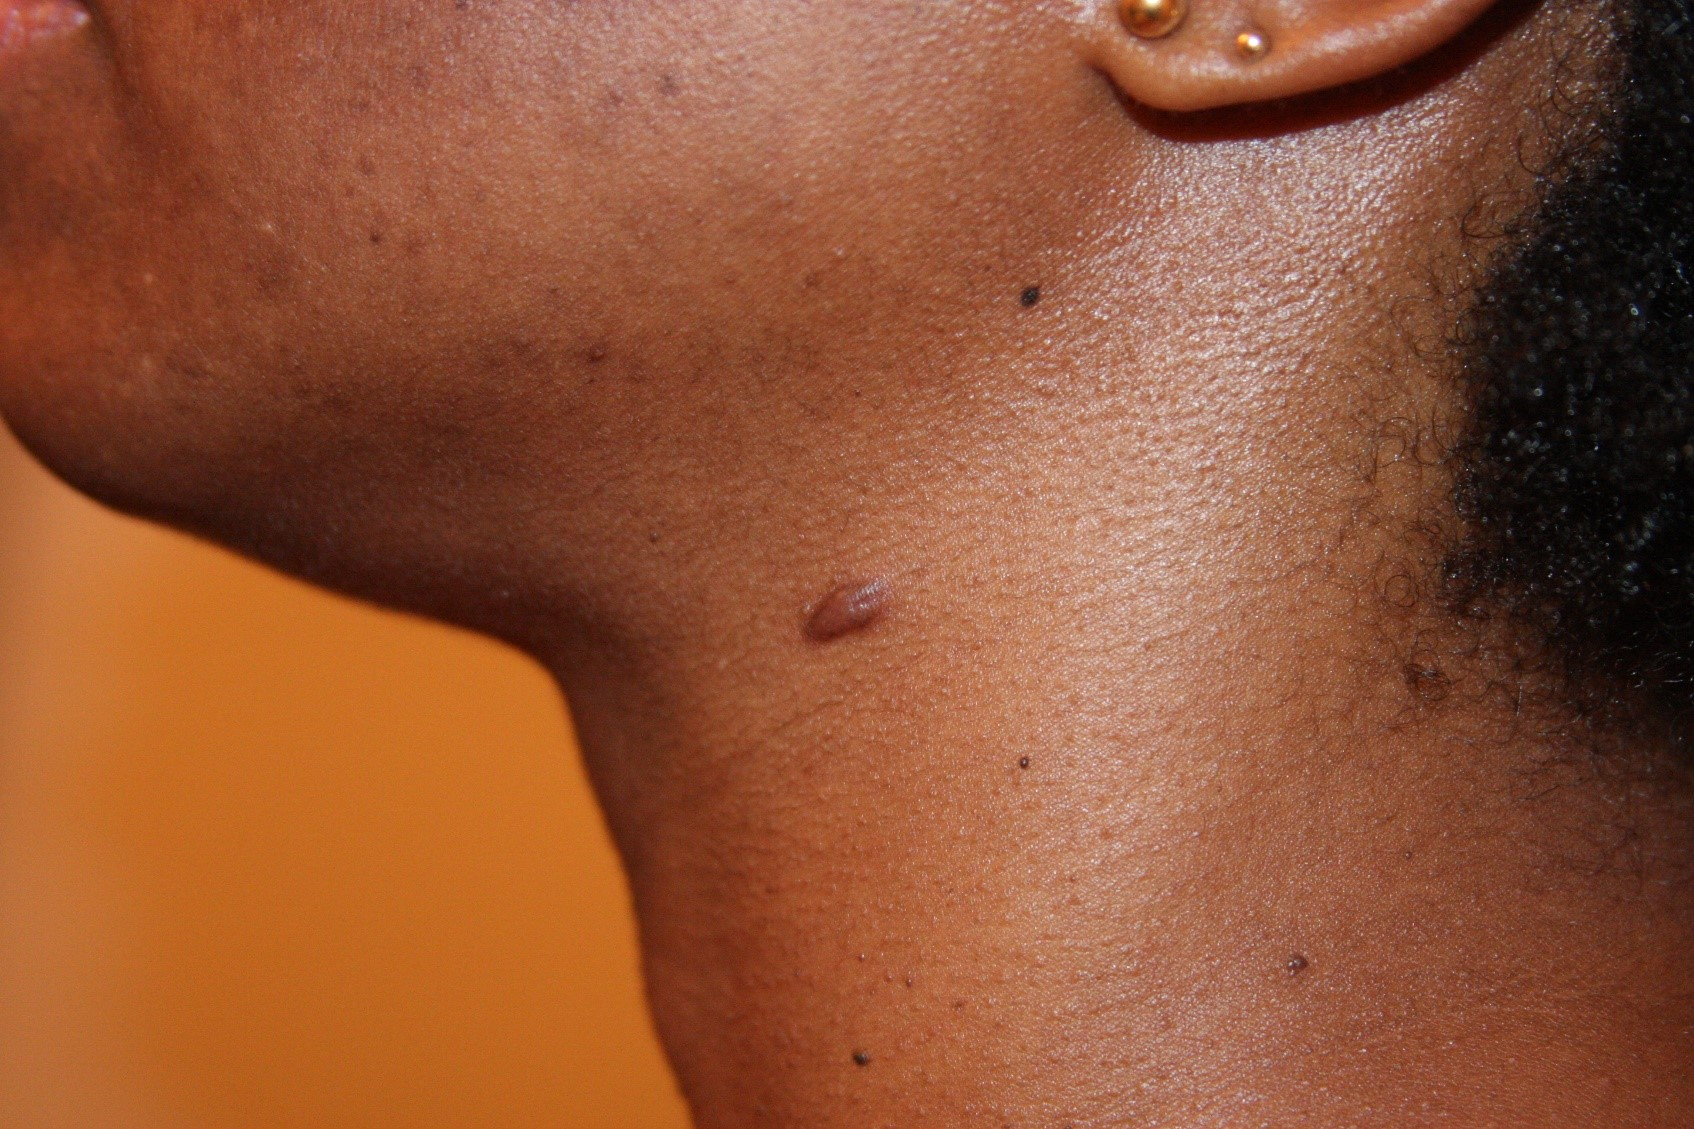 Early Stage, Papular Neck Keloid